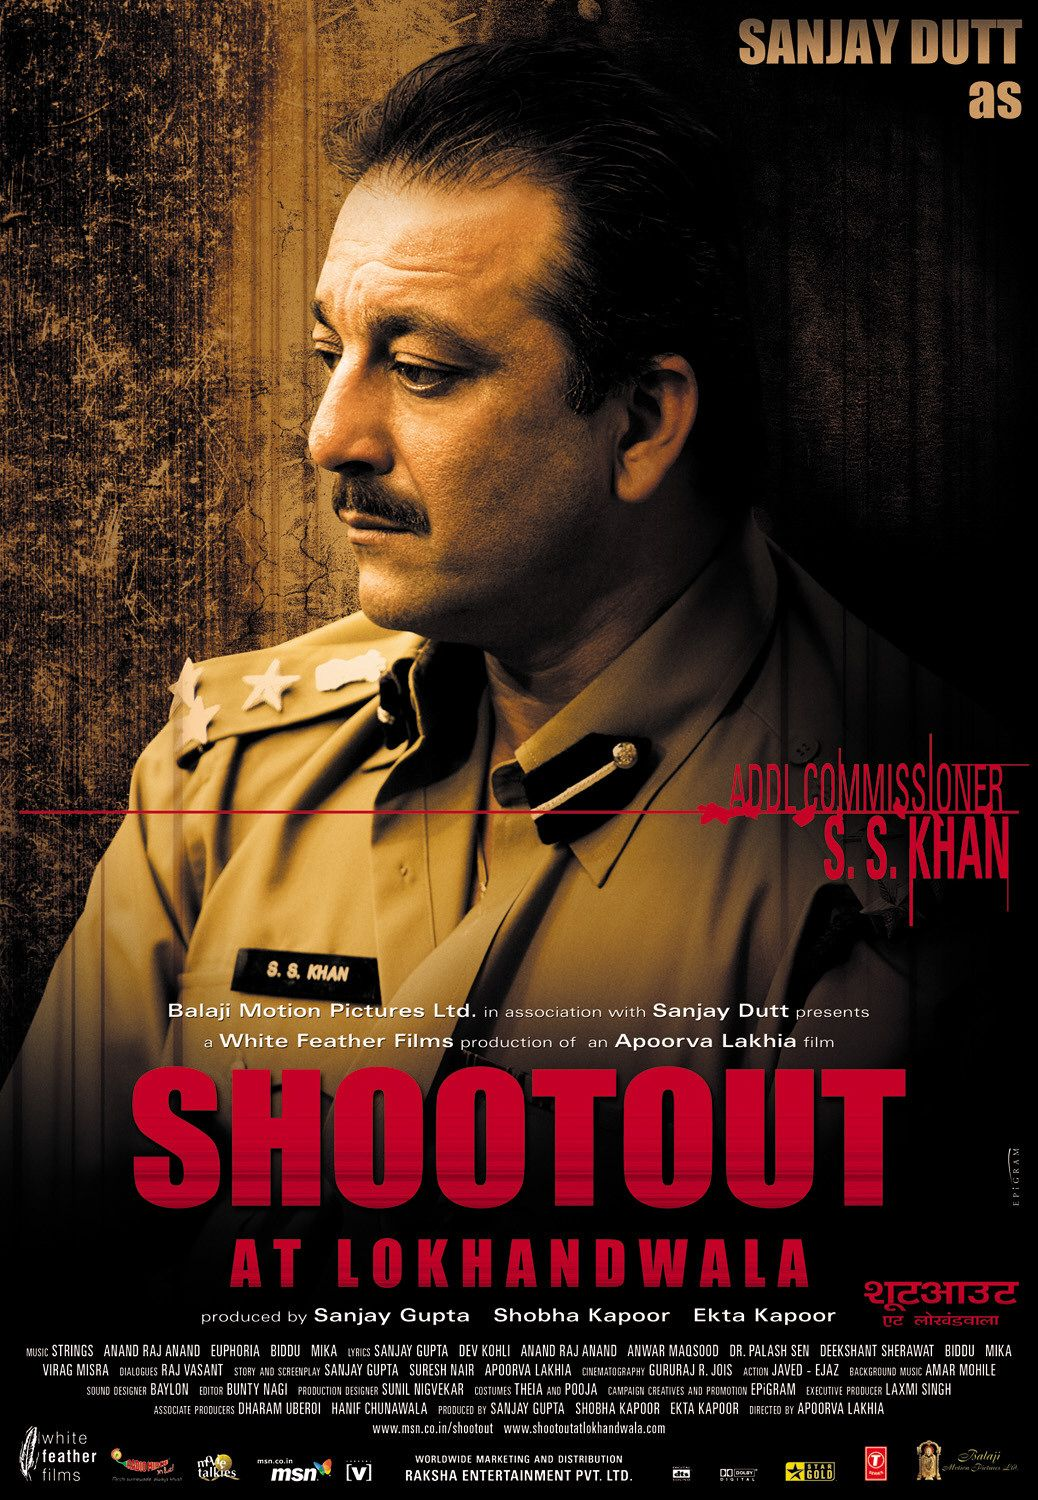 shoot_out_at_lokhandwala_xlg